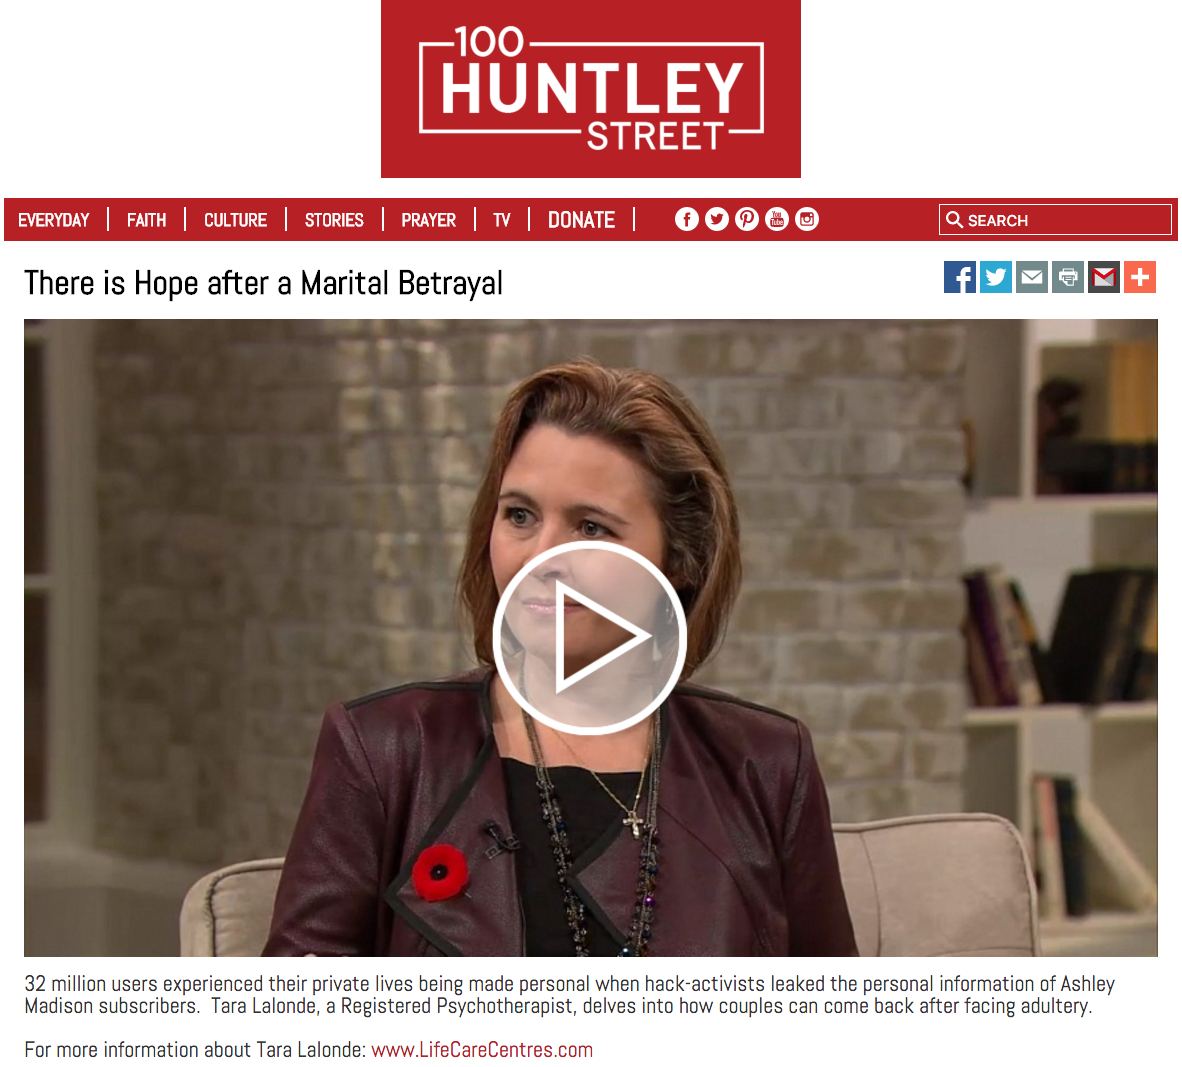 100 Huntley Street: There is Hope after a Marital Betrayal